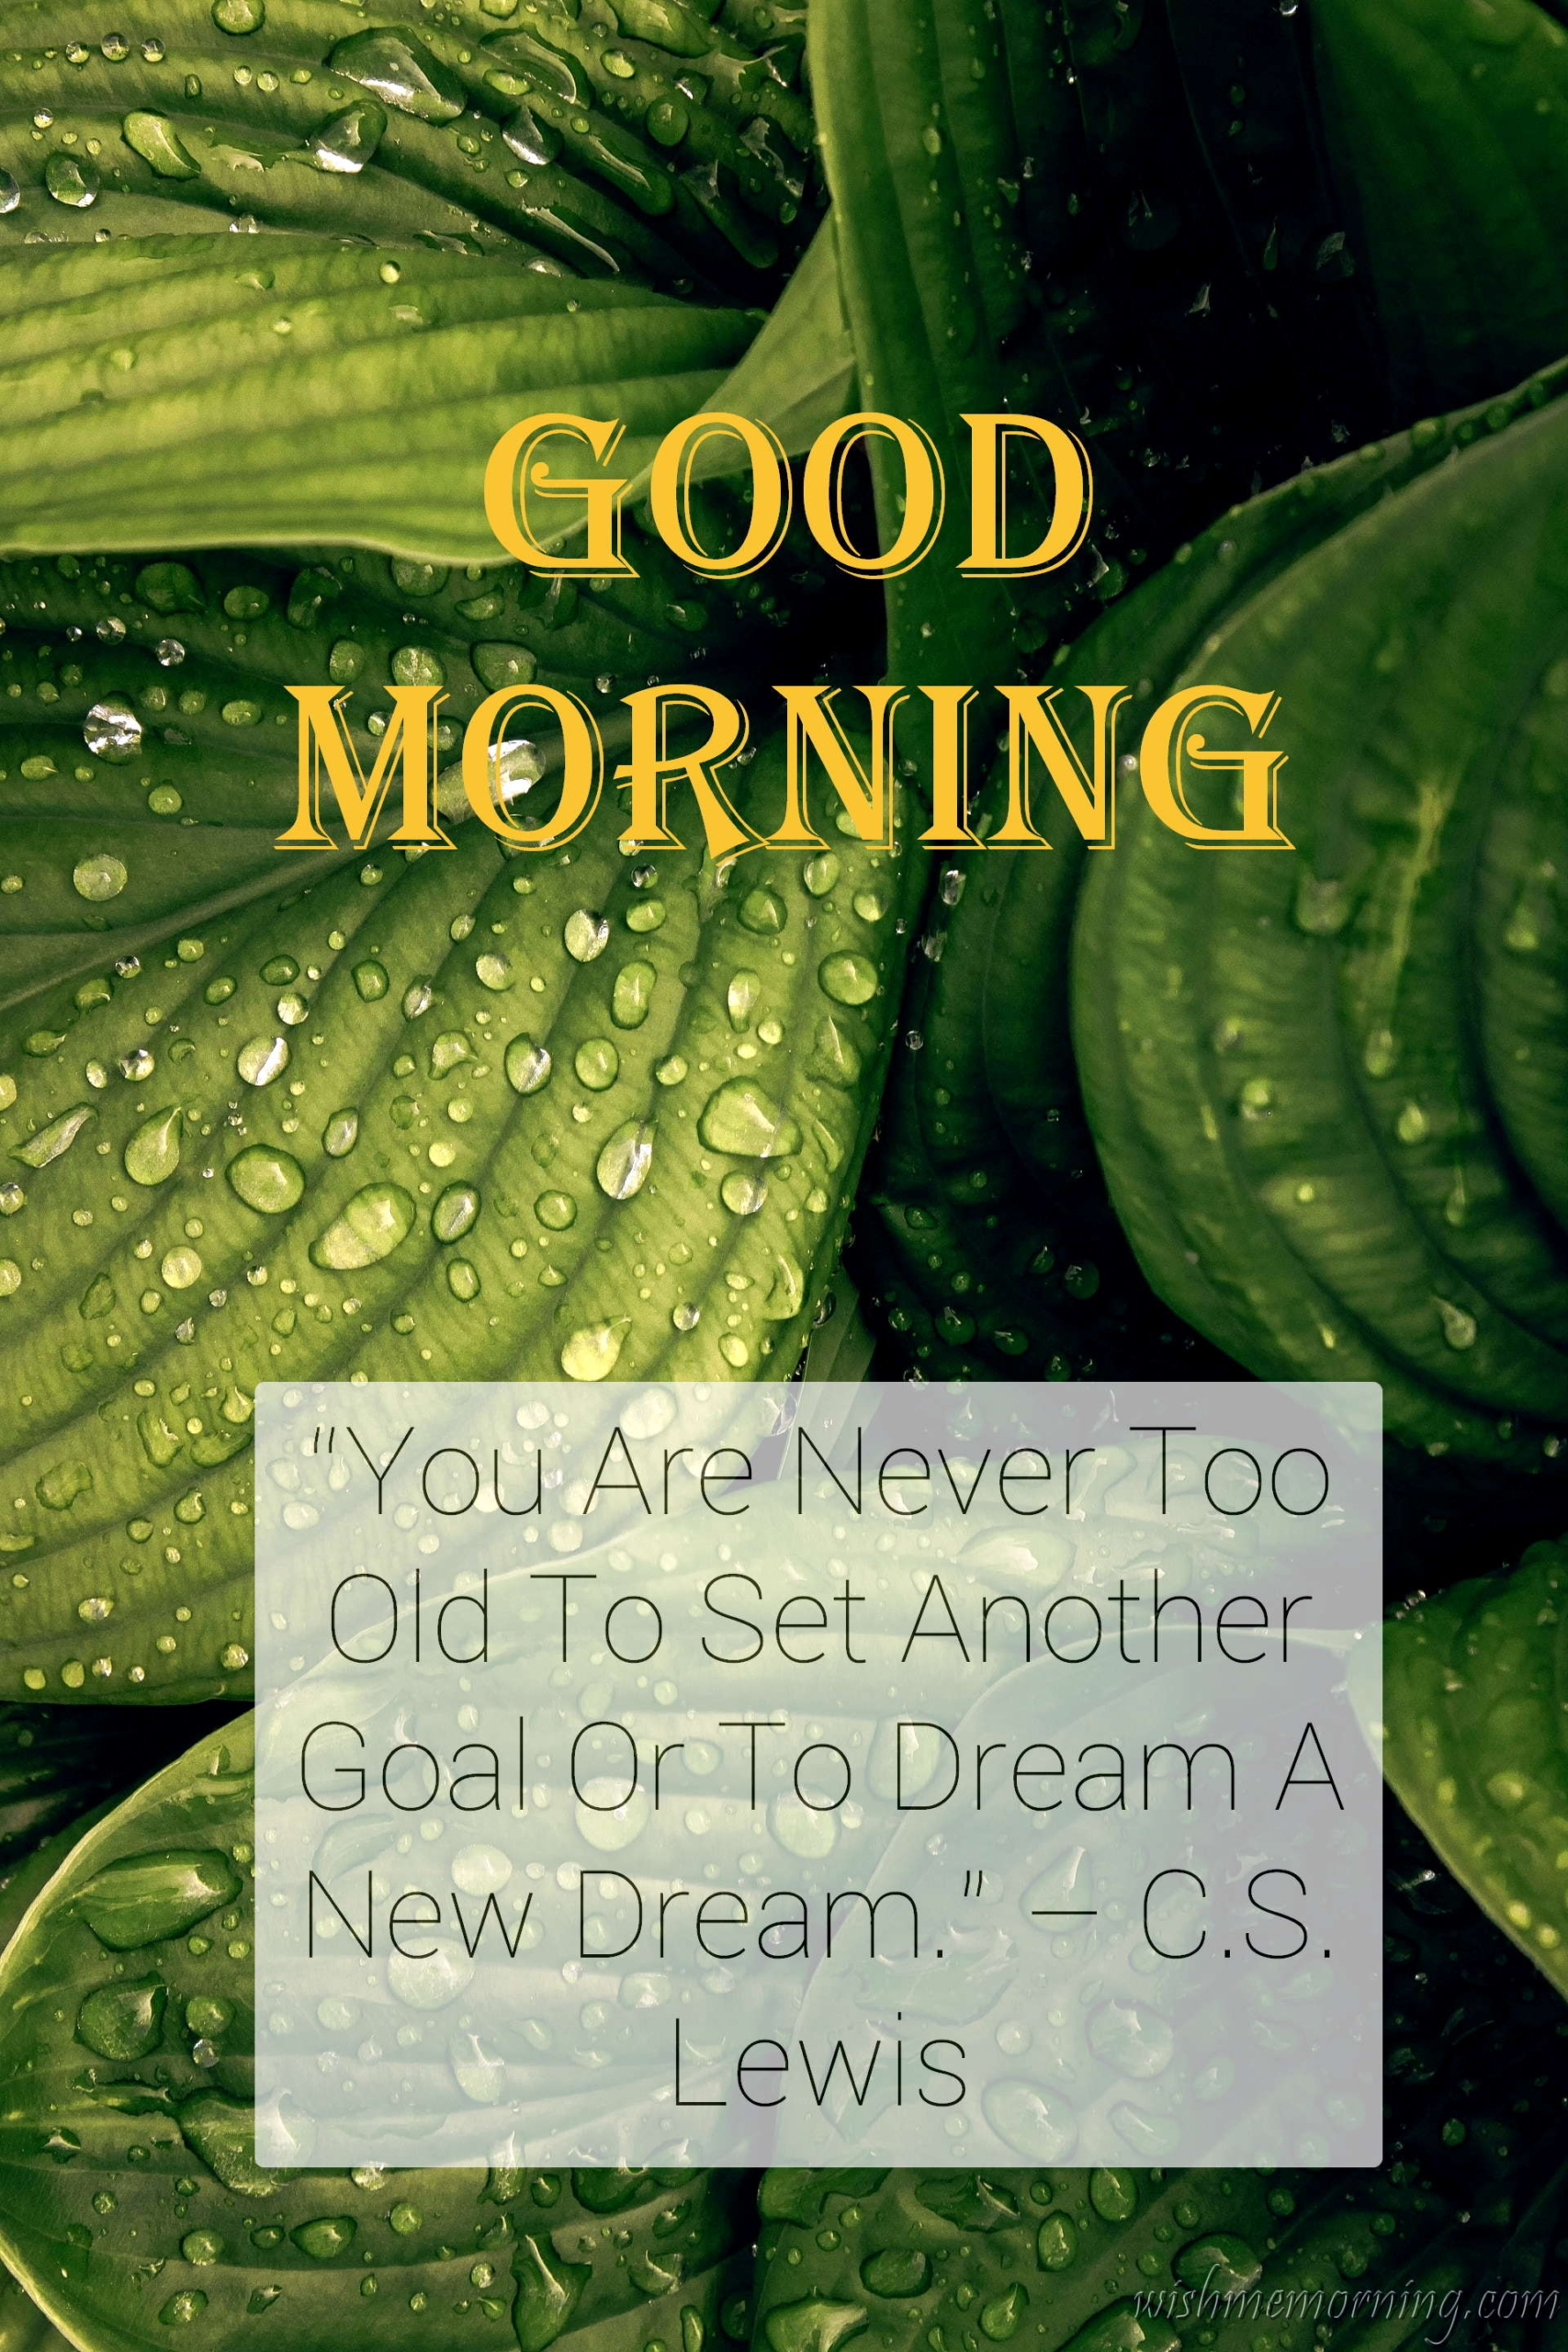 Good Morning Quote Helen C.S. Lewis Background